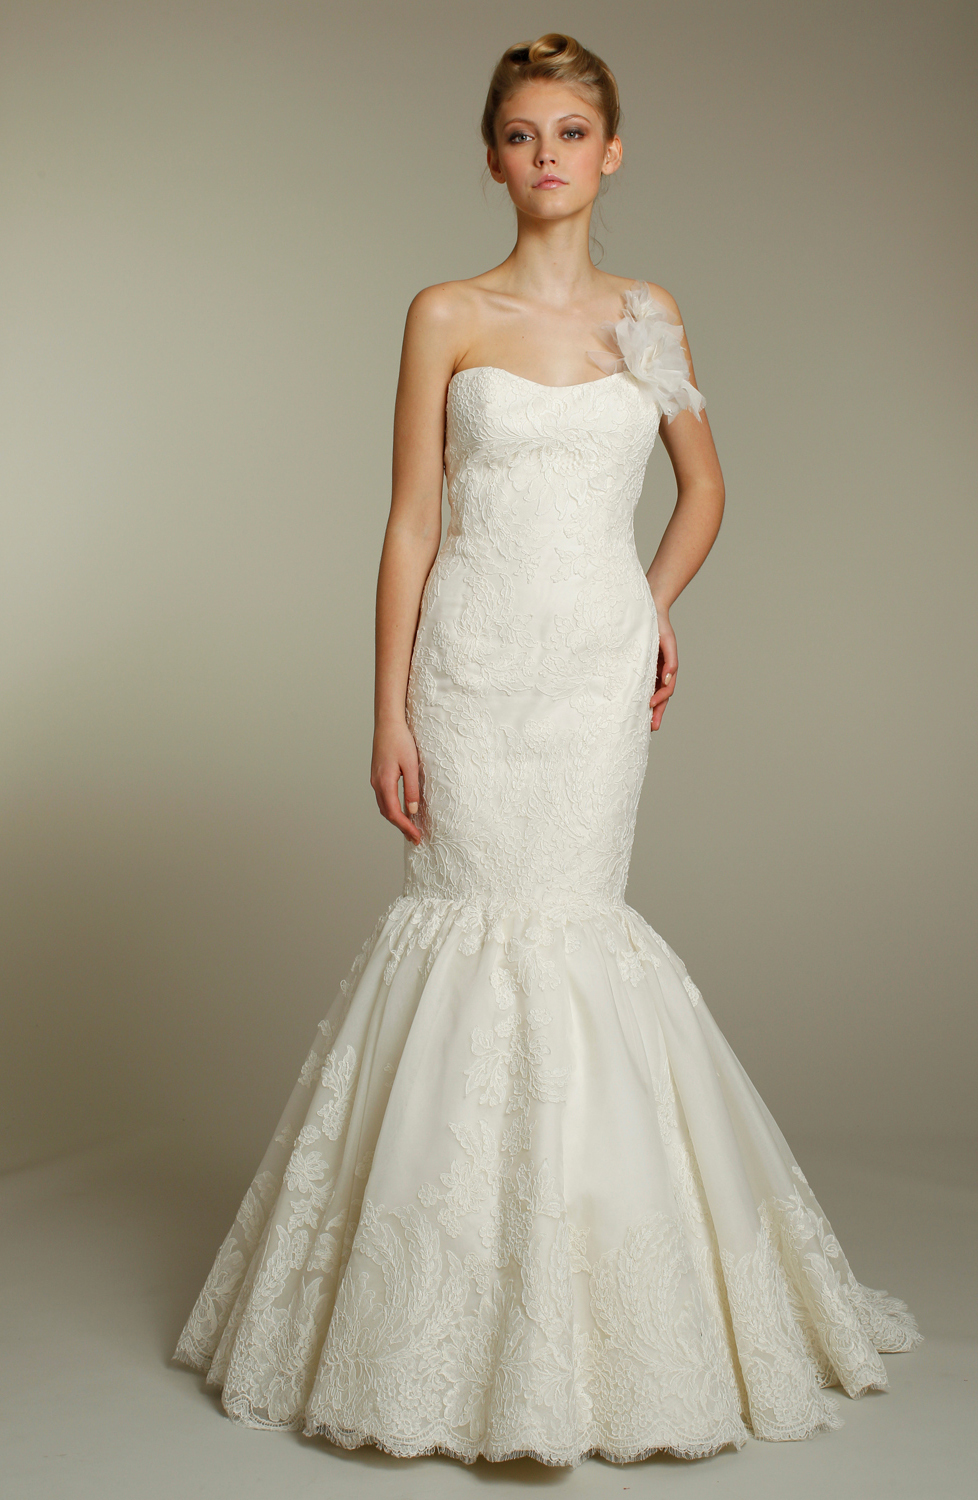 8158-ivory-lace-wedding-dress-fall-2011-bridal-gowns-lace.full